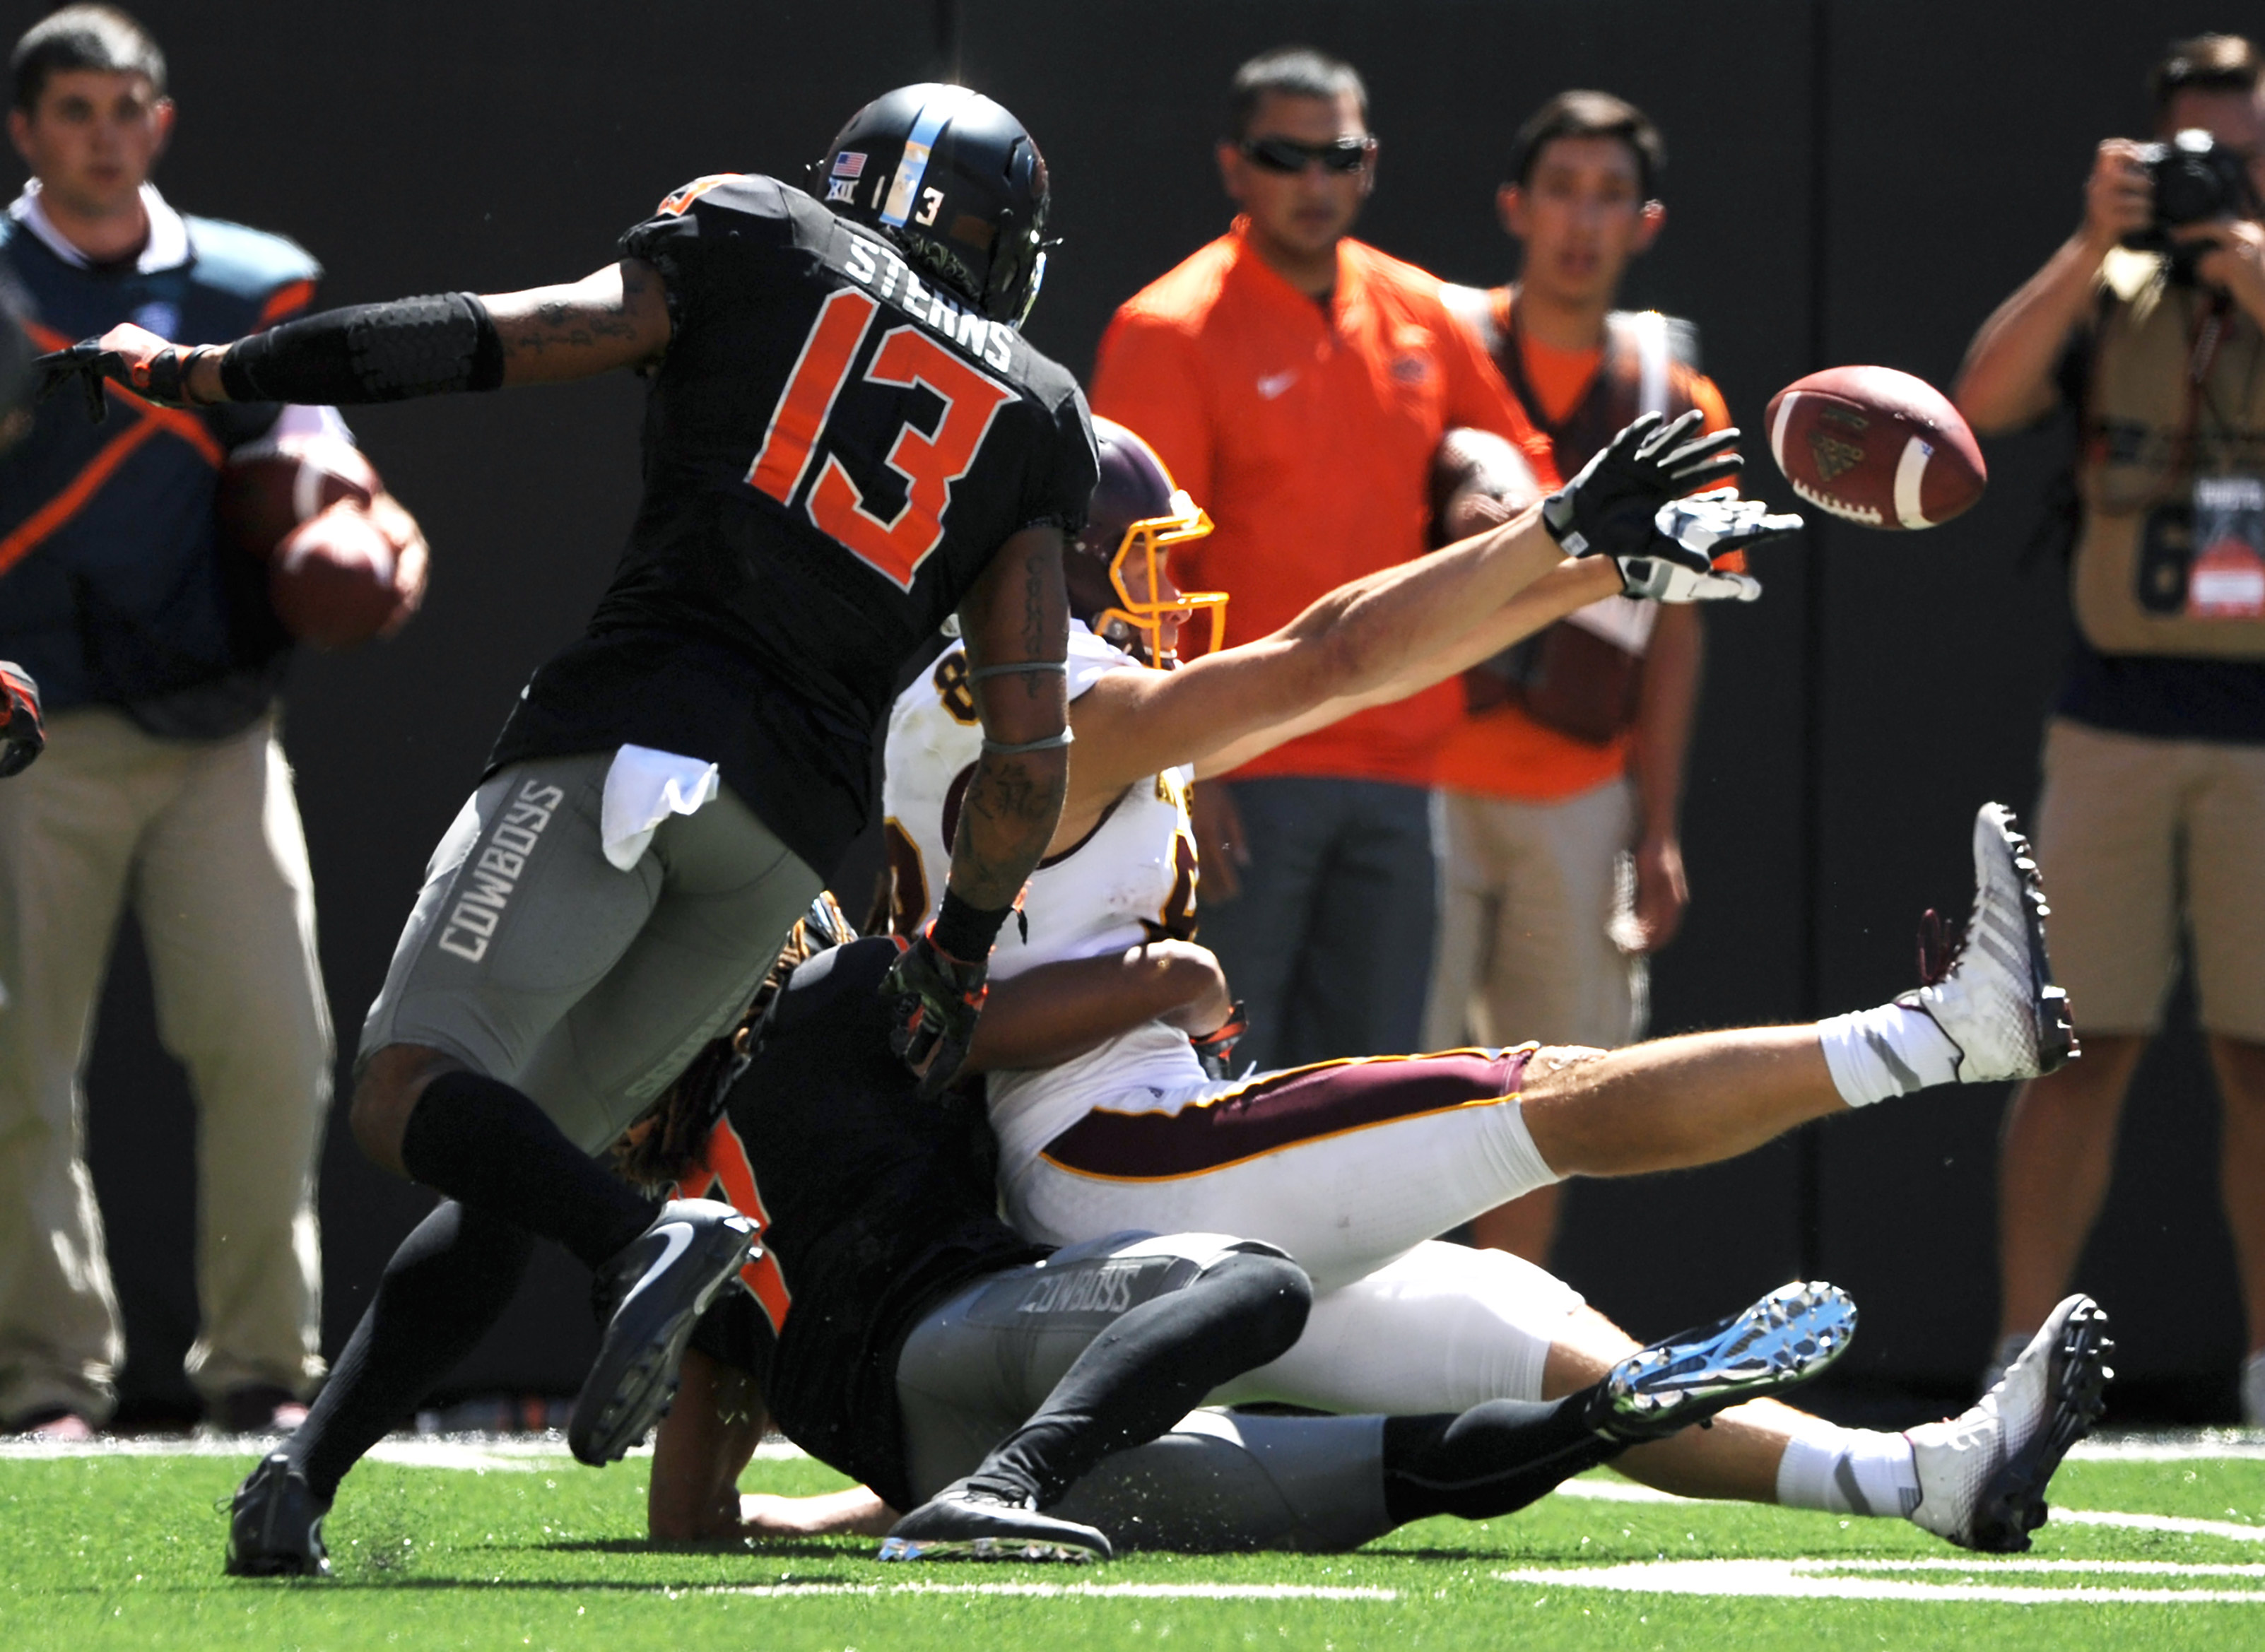 Oklahoma State safety Jordan Sterns, left, watches as Central Michigan wide receiver Jesse Kroll, right, being tackled by Oklahoma State corner back Ramon Richards, bottom, tosses the ball back to Central Michigan wide receiver Cory Willis resulting in a